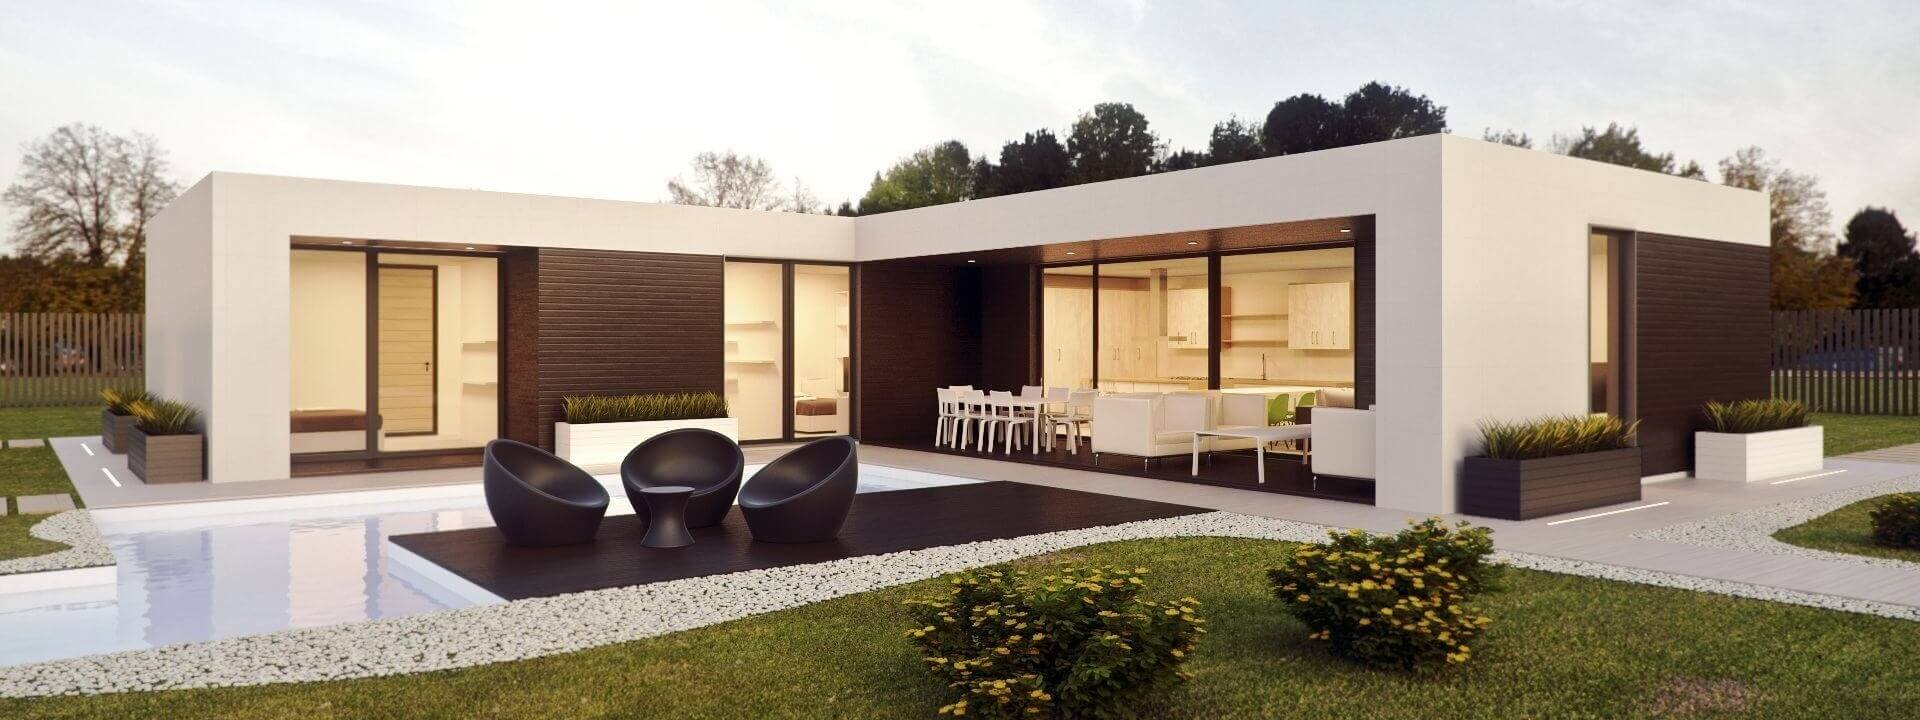 Best Kitchen Gallery: Smarthomesusa Image 1 3 of Container Homes Built In Usa on rachelxblog.com